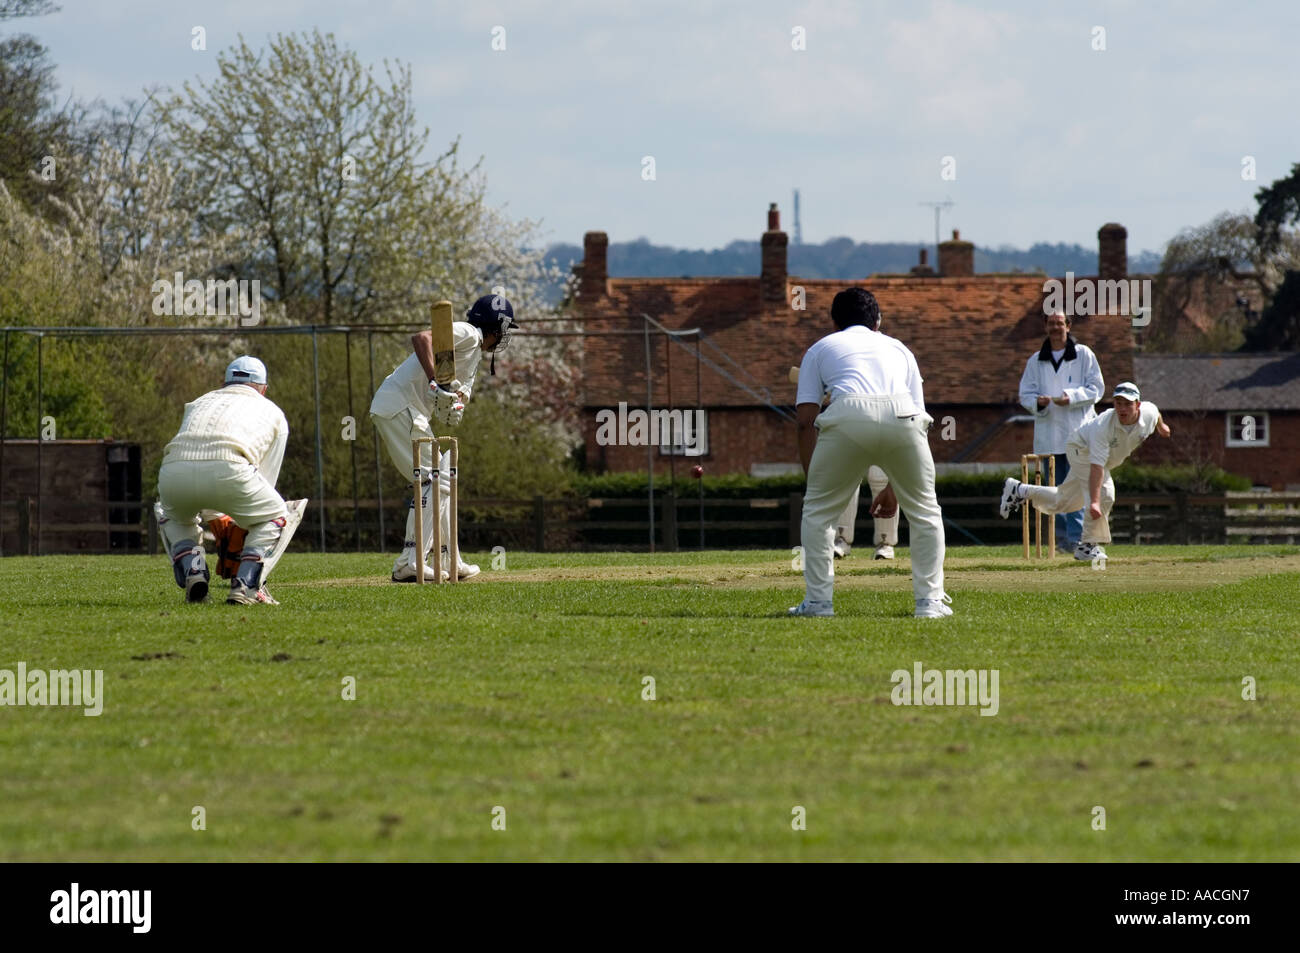 A traditional game of cricket in Milton Keynes Village - Stock Image